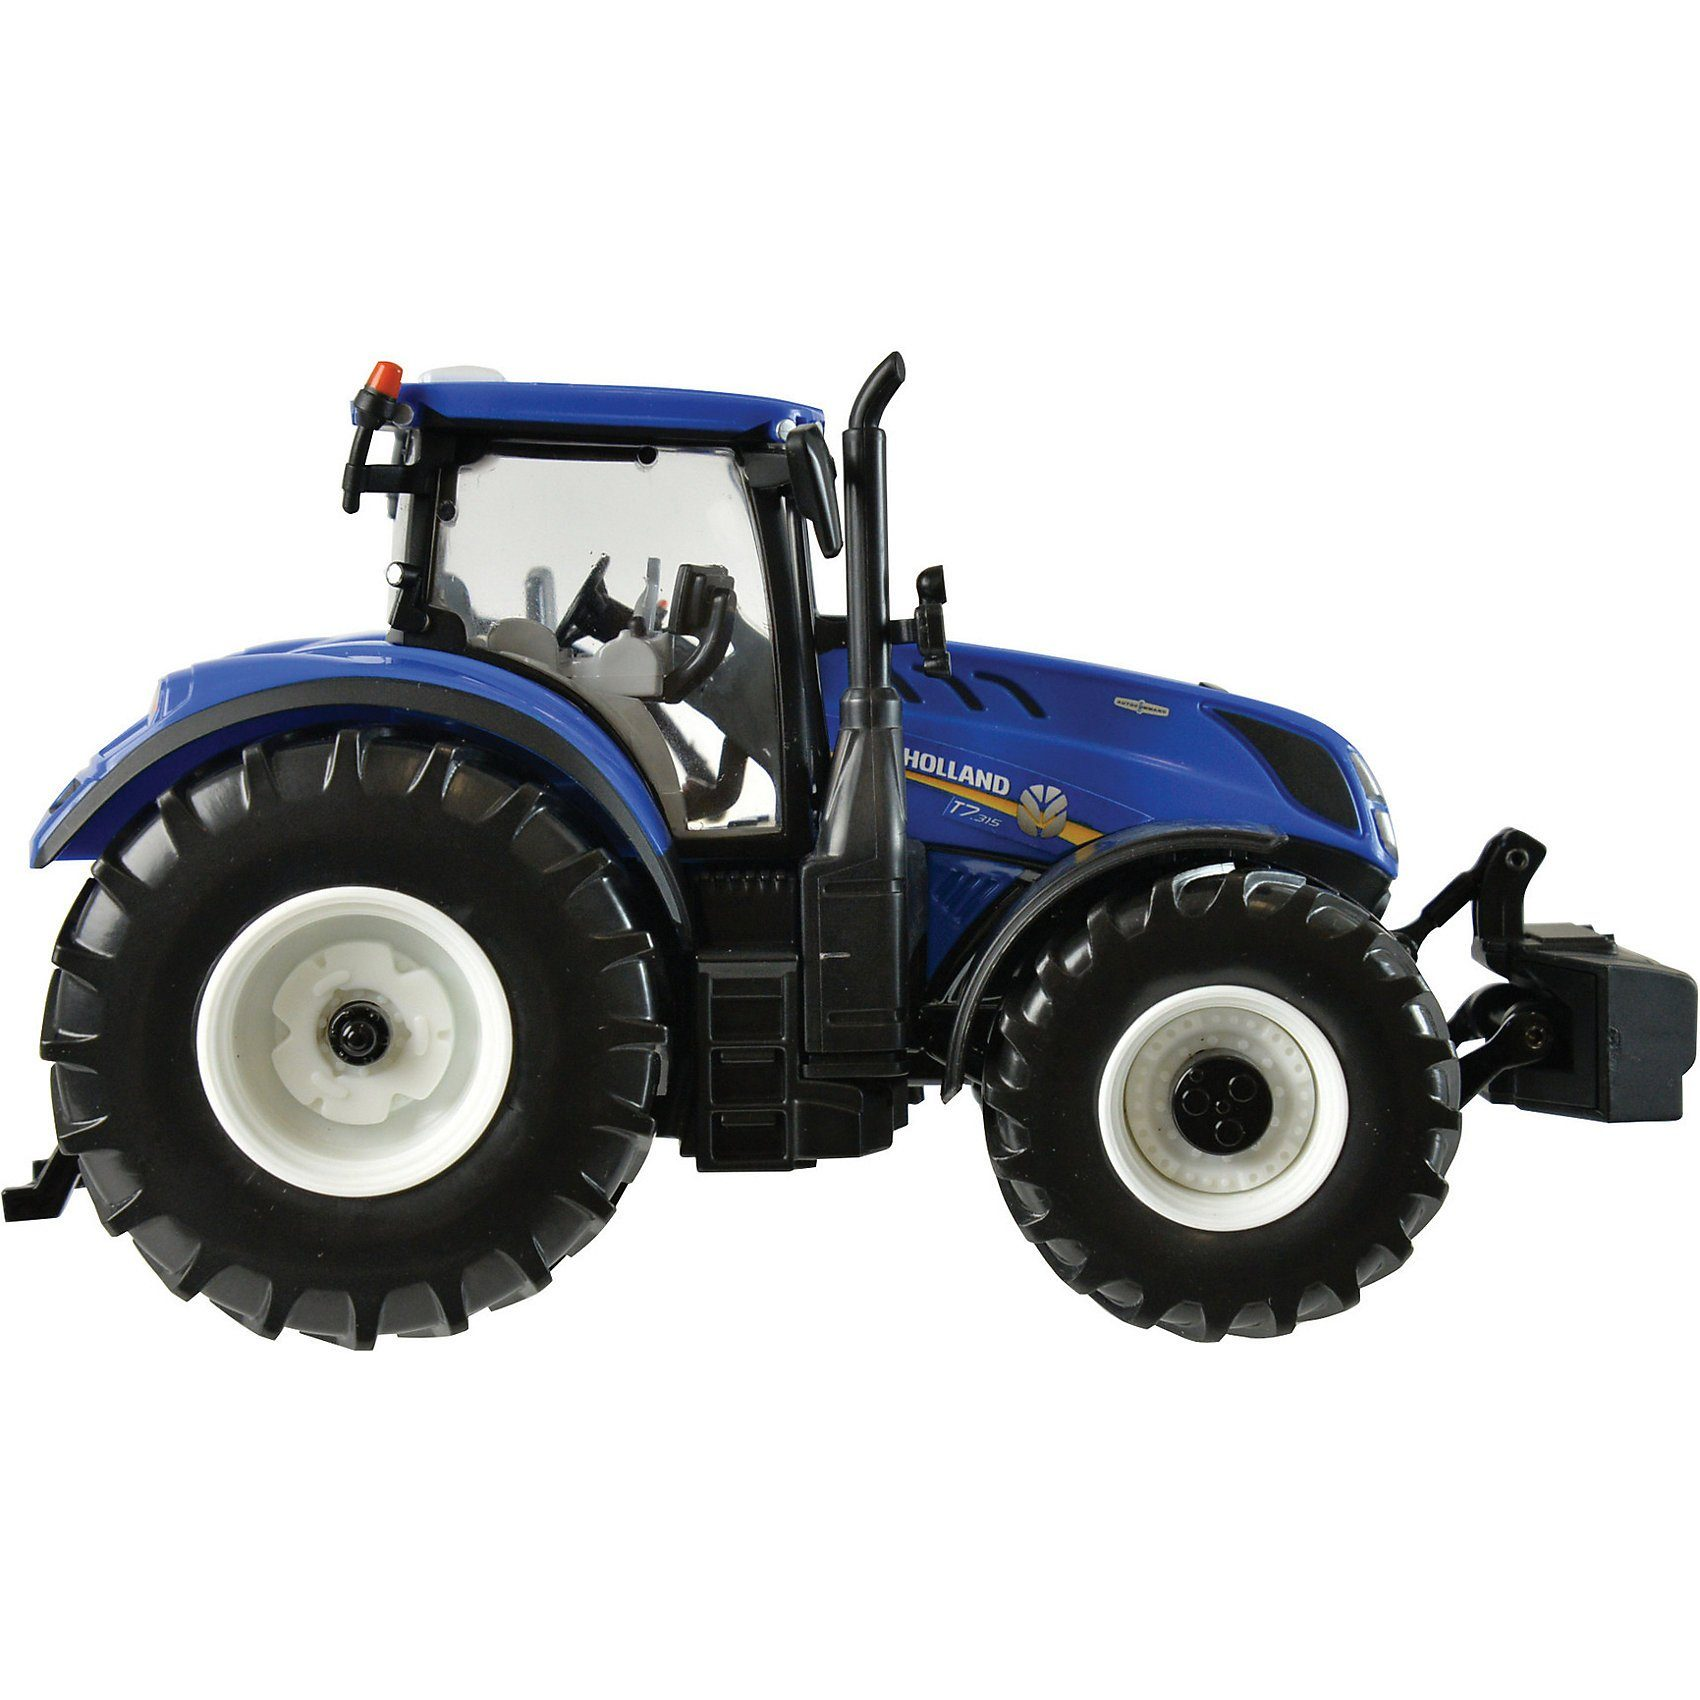 Tomy® Britains - New Holland - T7.315 Traktor 1:32